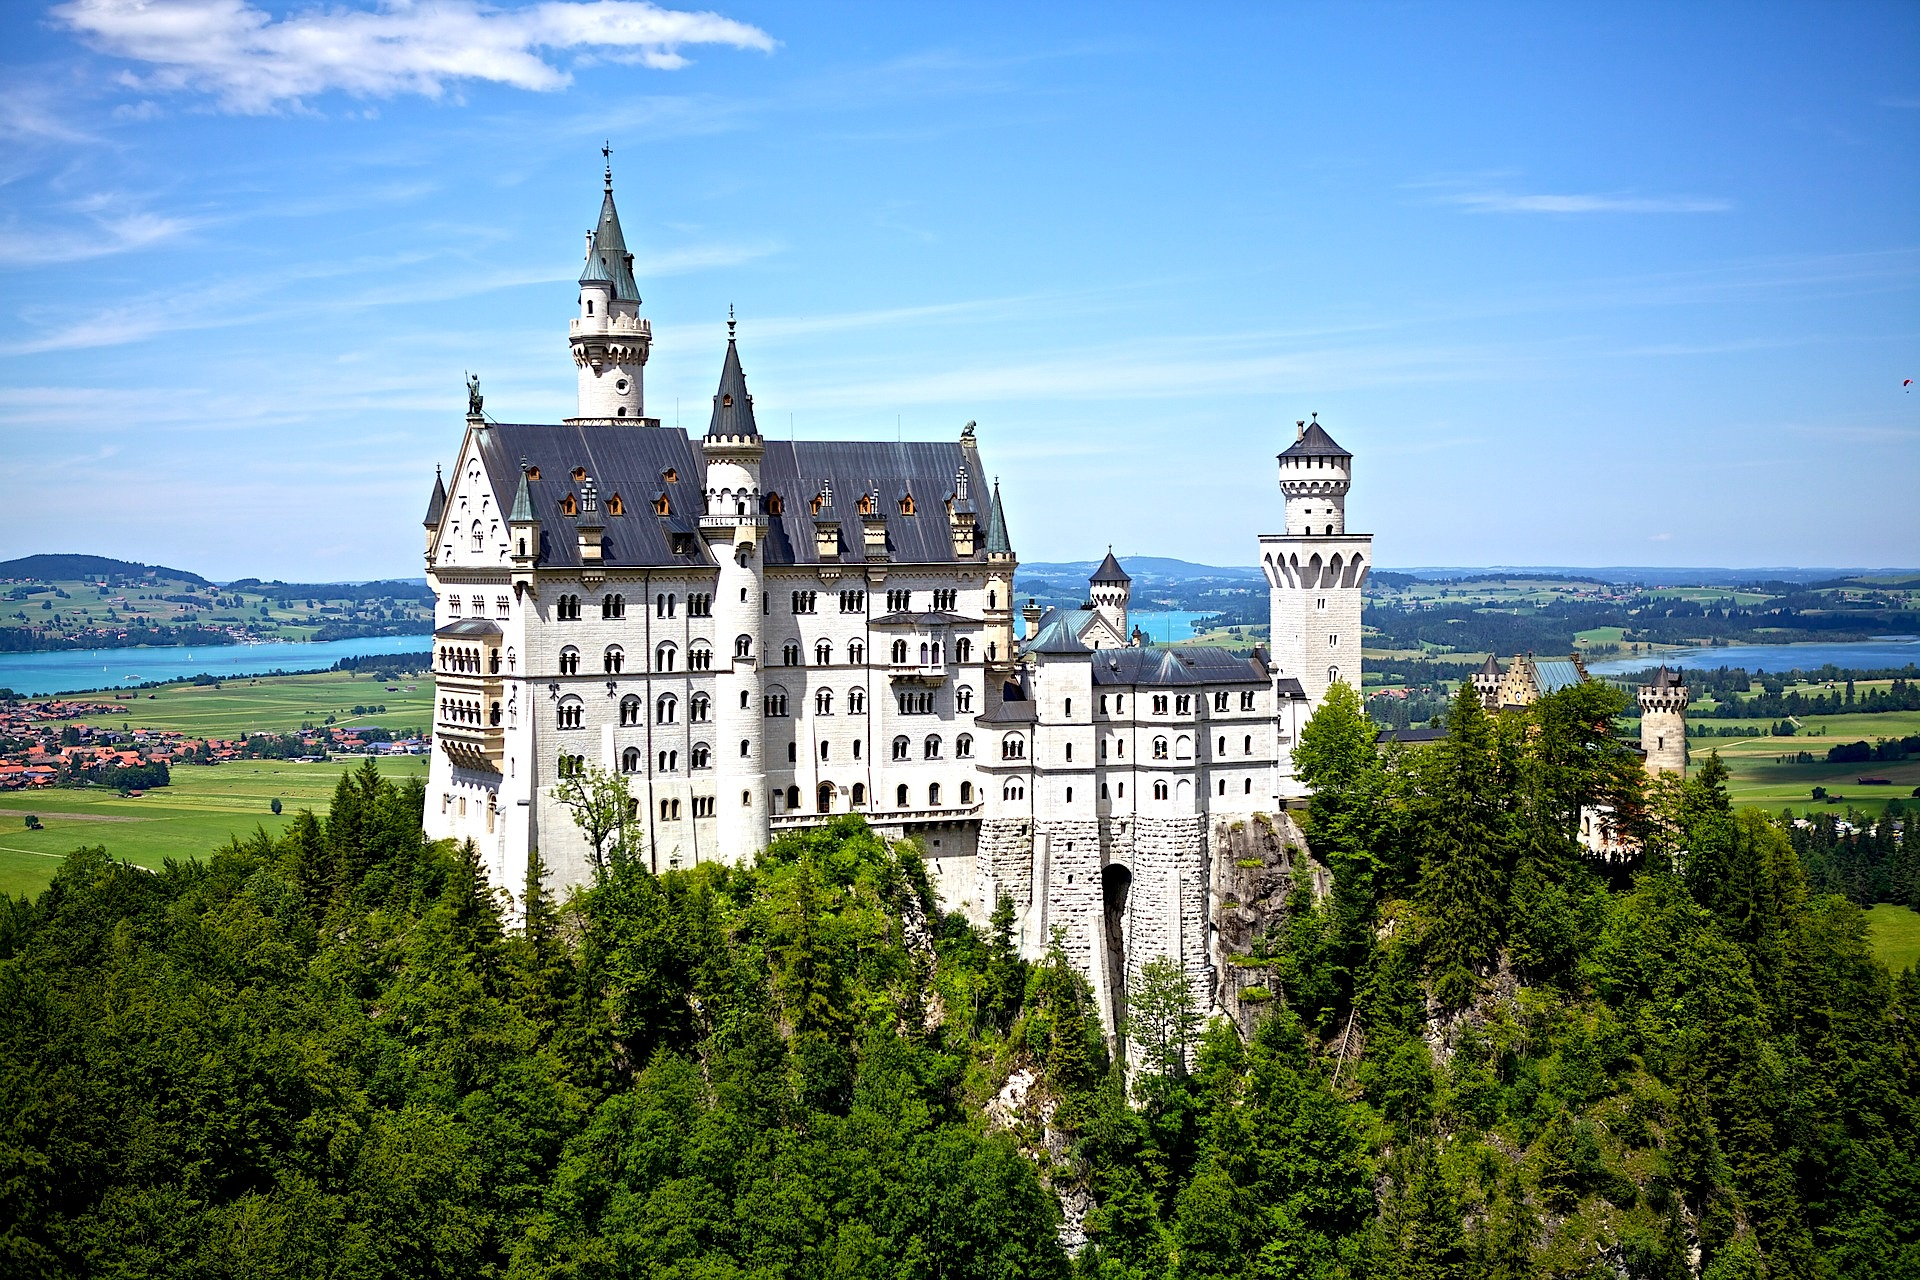 neuschwansteincastle, disney castle, what to do in germany, sights, historical tour, private daytrip